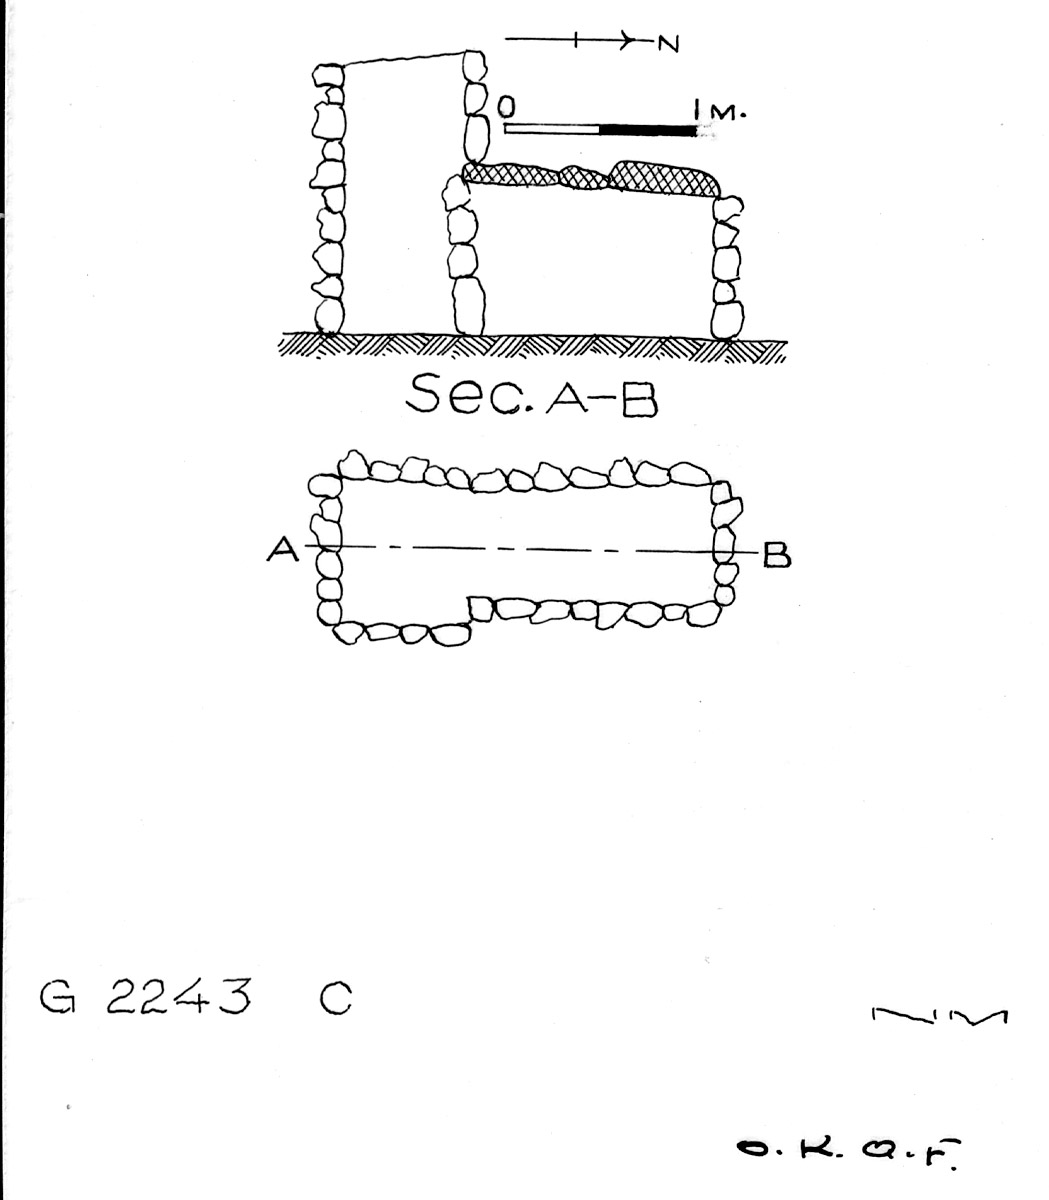 Maps and plans: G 2243, Shaft C